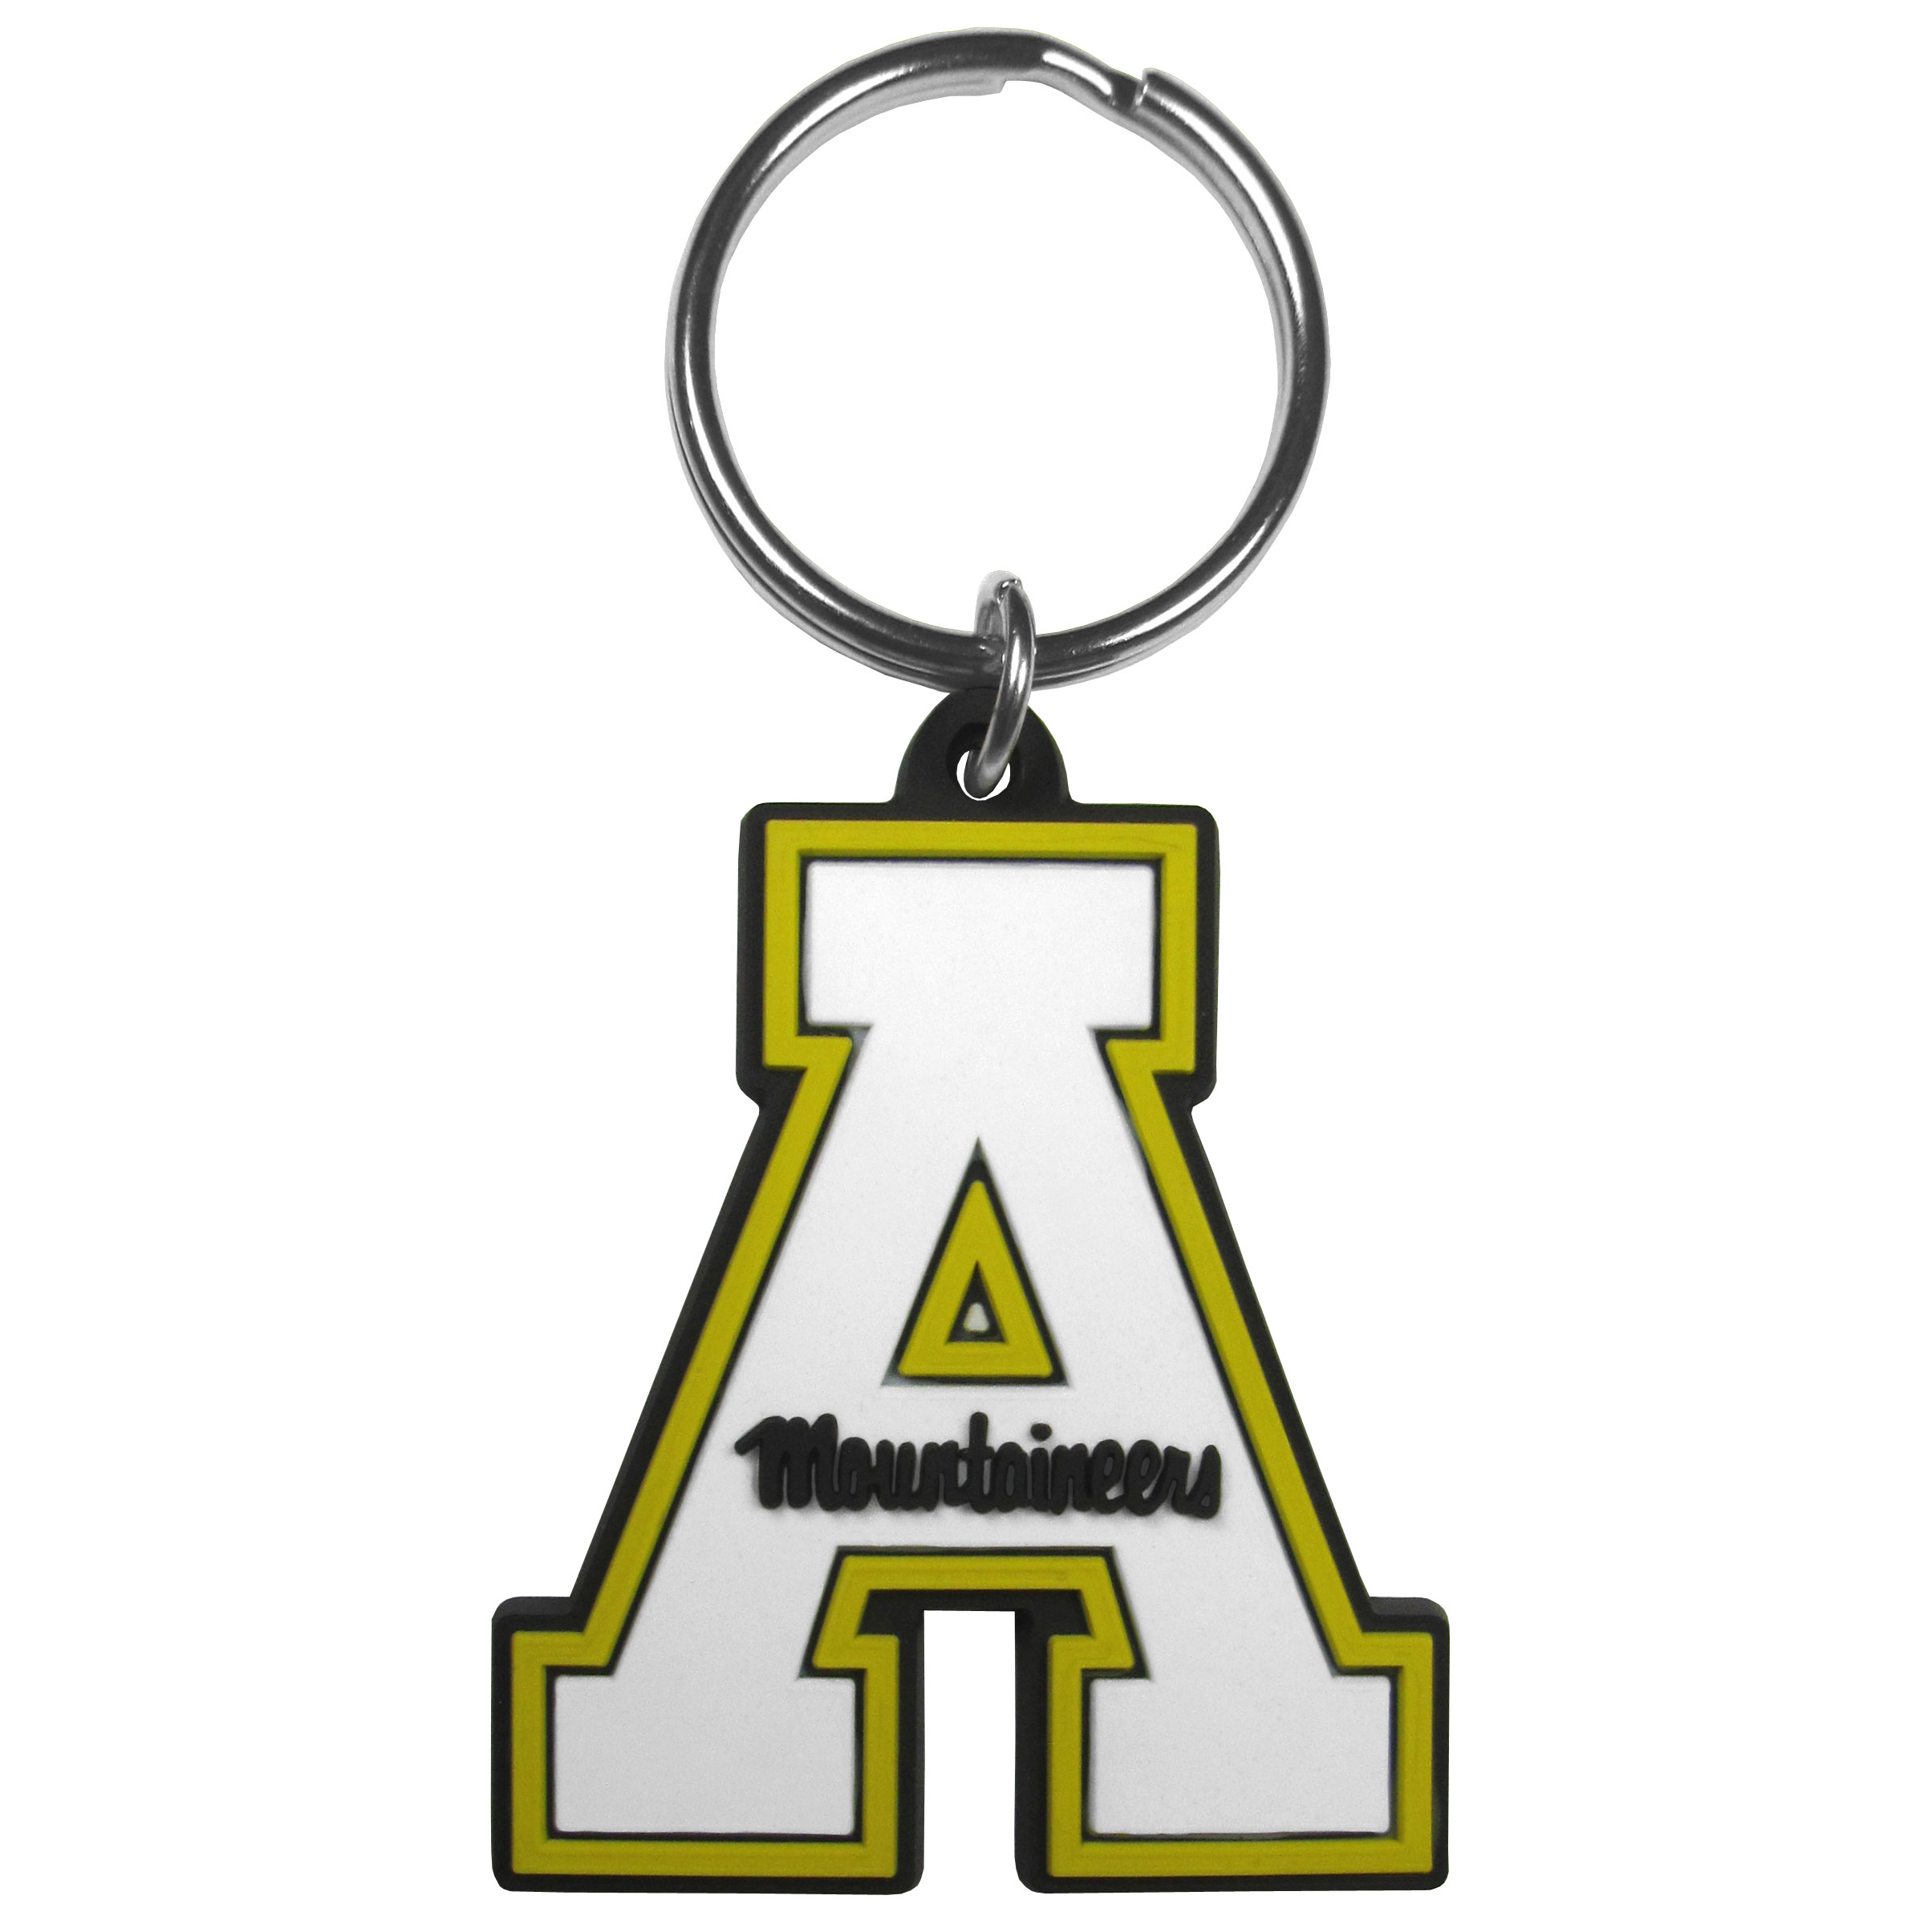 Appalachian St. Mountaineers Flex Key Chain - Our fun, flexible Appalachian St. Mountaineers key chains are made of a rubbery material that is layered to create a bright, textured logo.